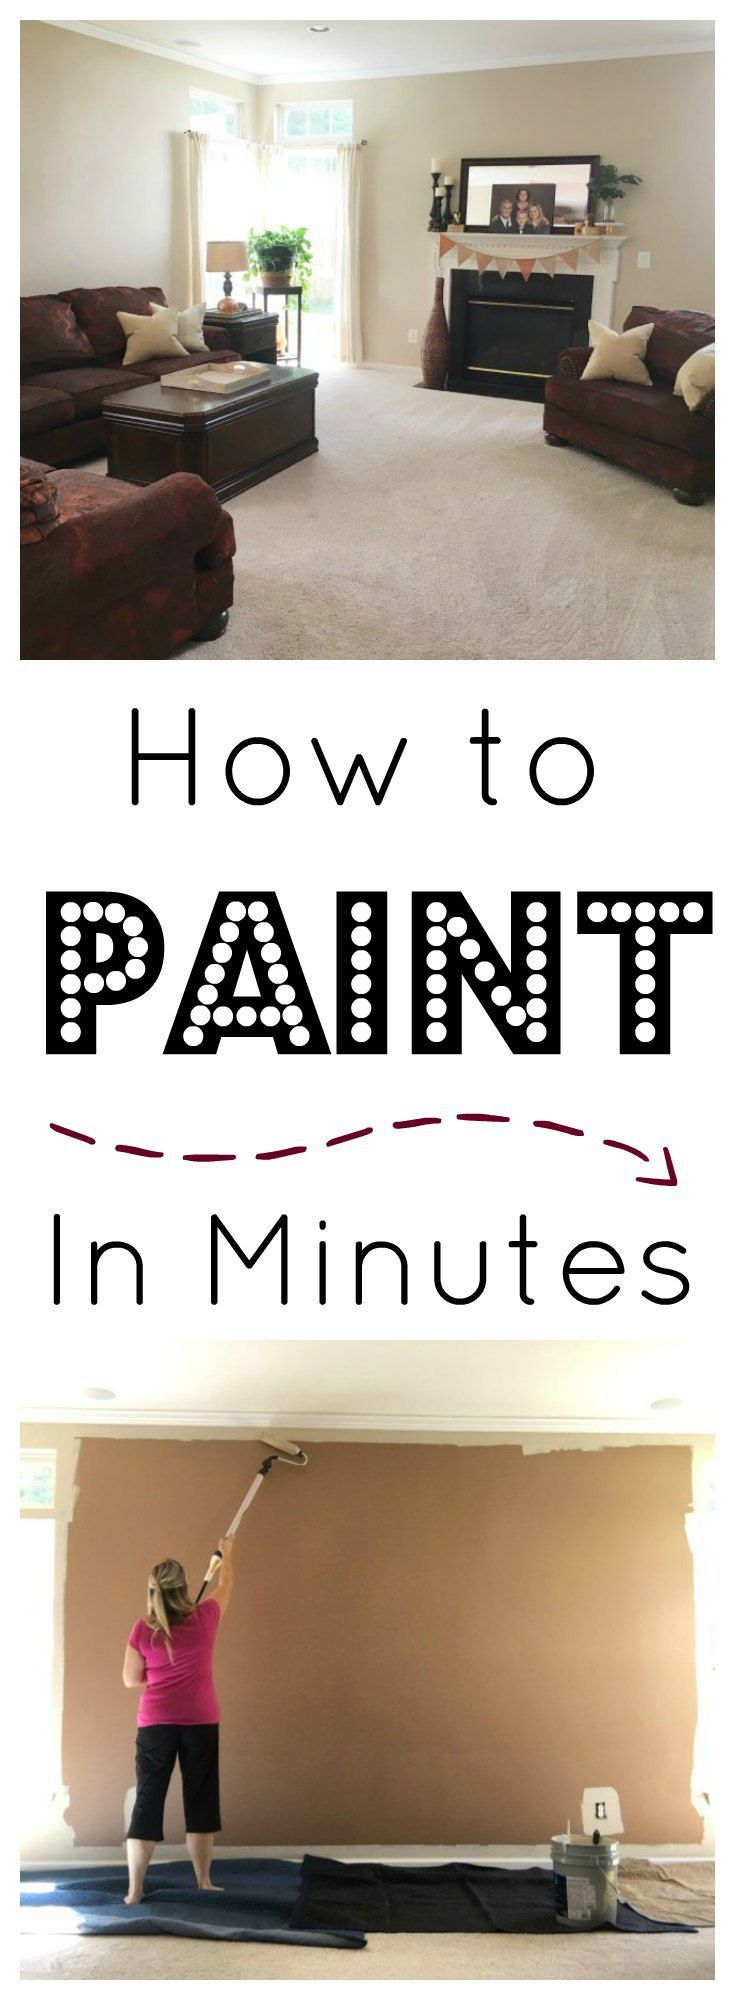 how to paint a room before and after how to paint in minutes on www.sugarbananas.com with sherwin williams and wagner smart paint roller